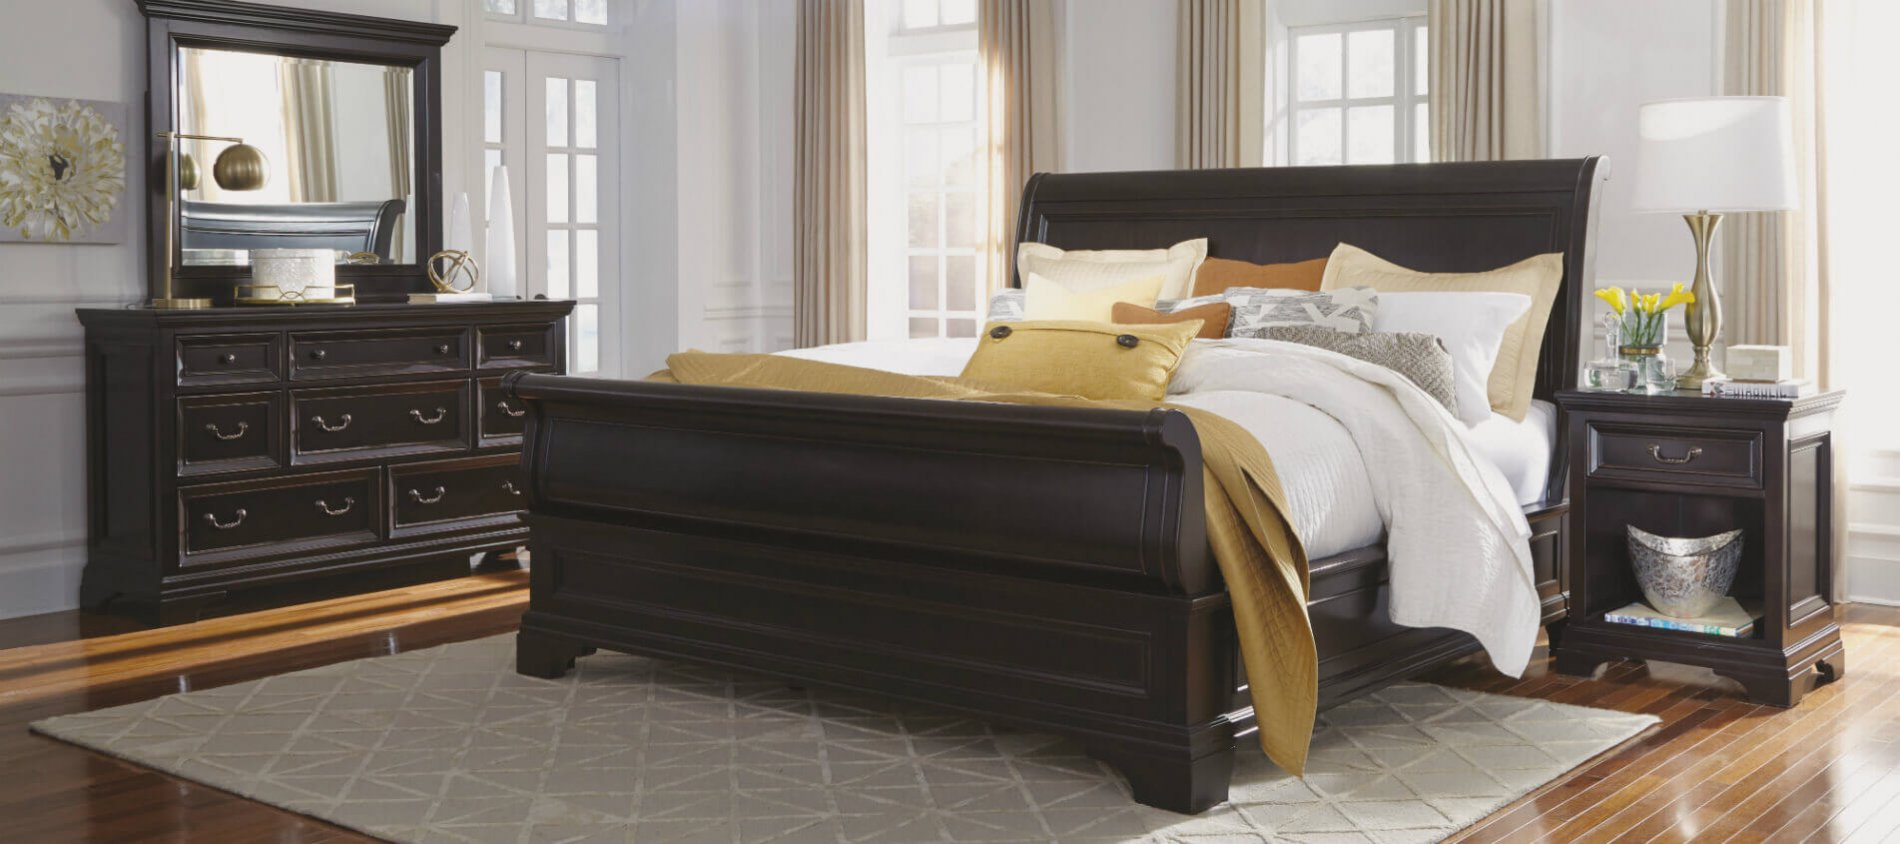 Camberly Bedroom Collection featuring bold structure with a dark wood finish